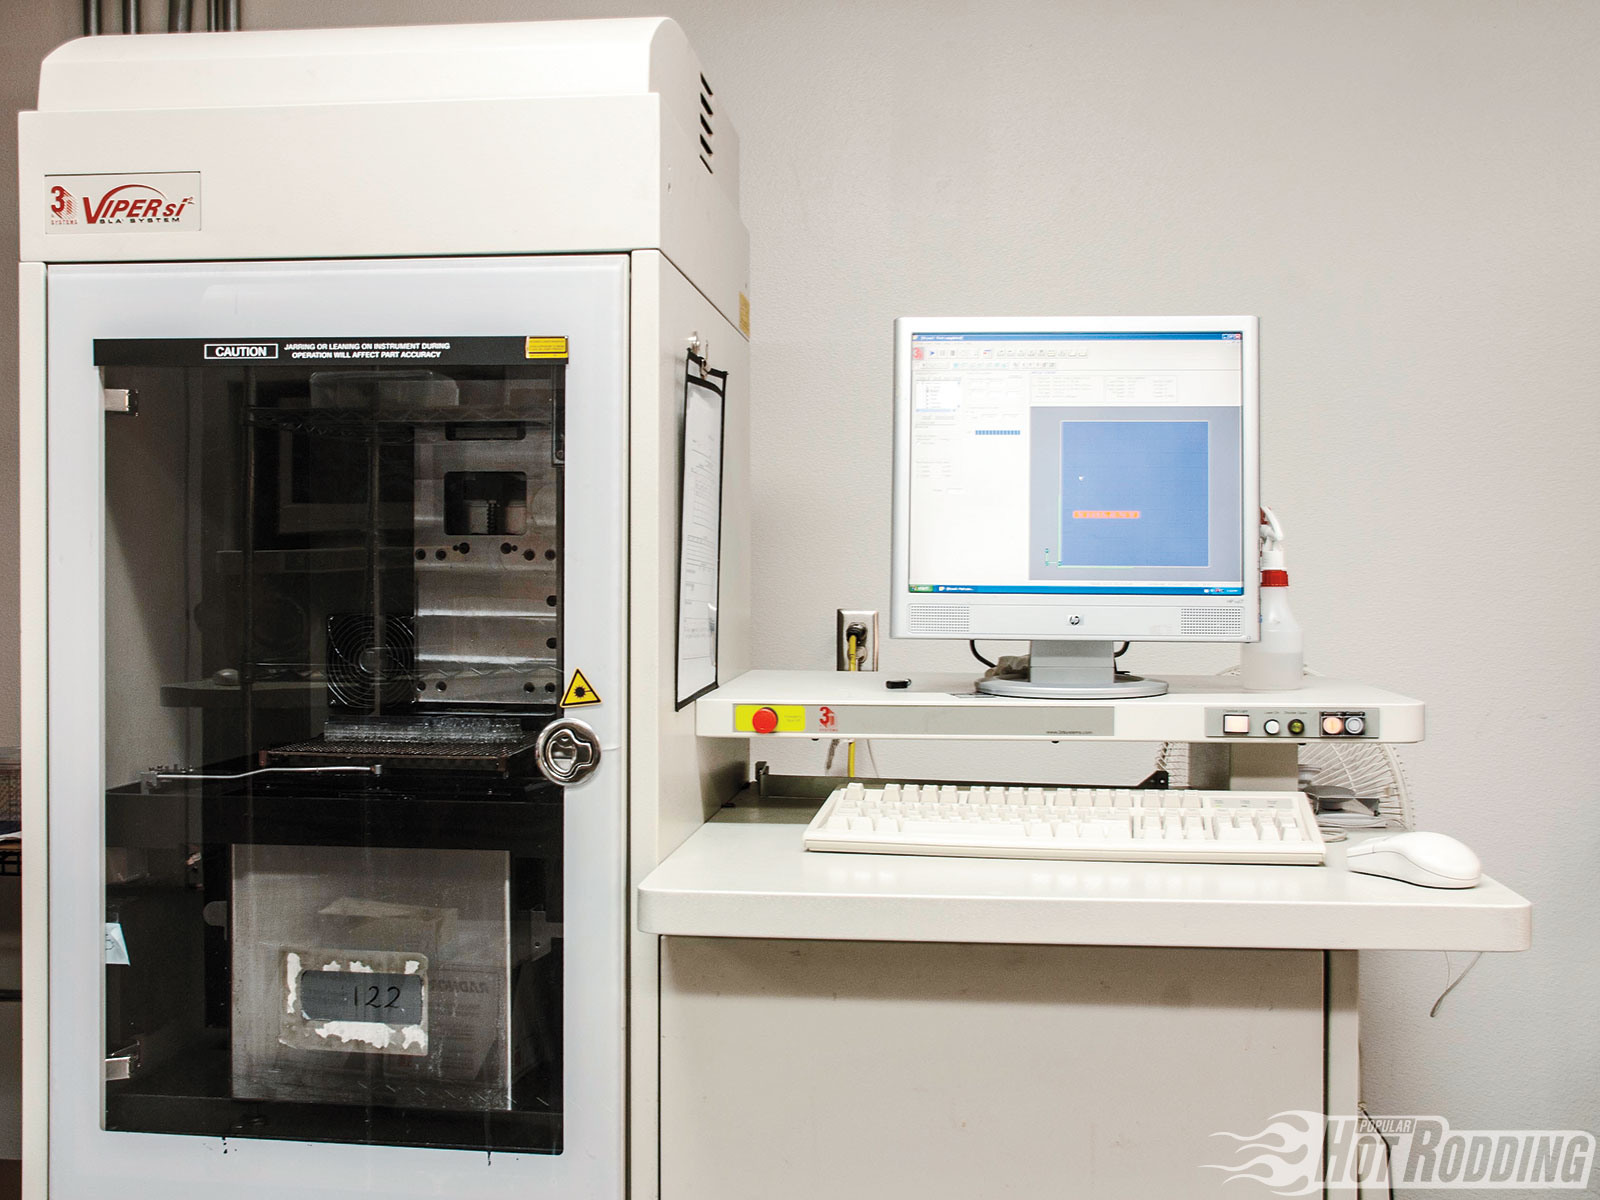 5. The SLA machine Forecast 3D will be using is a Viper si by 3D Systems. It's one of the smaller units they have, but it features a smaller, finer laser than most comparable machines, which outputs high-resolution parts with crisp details.